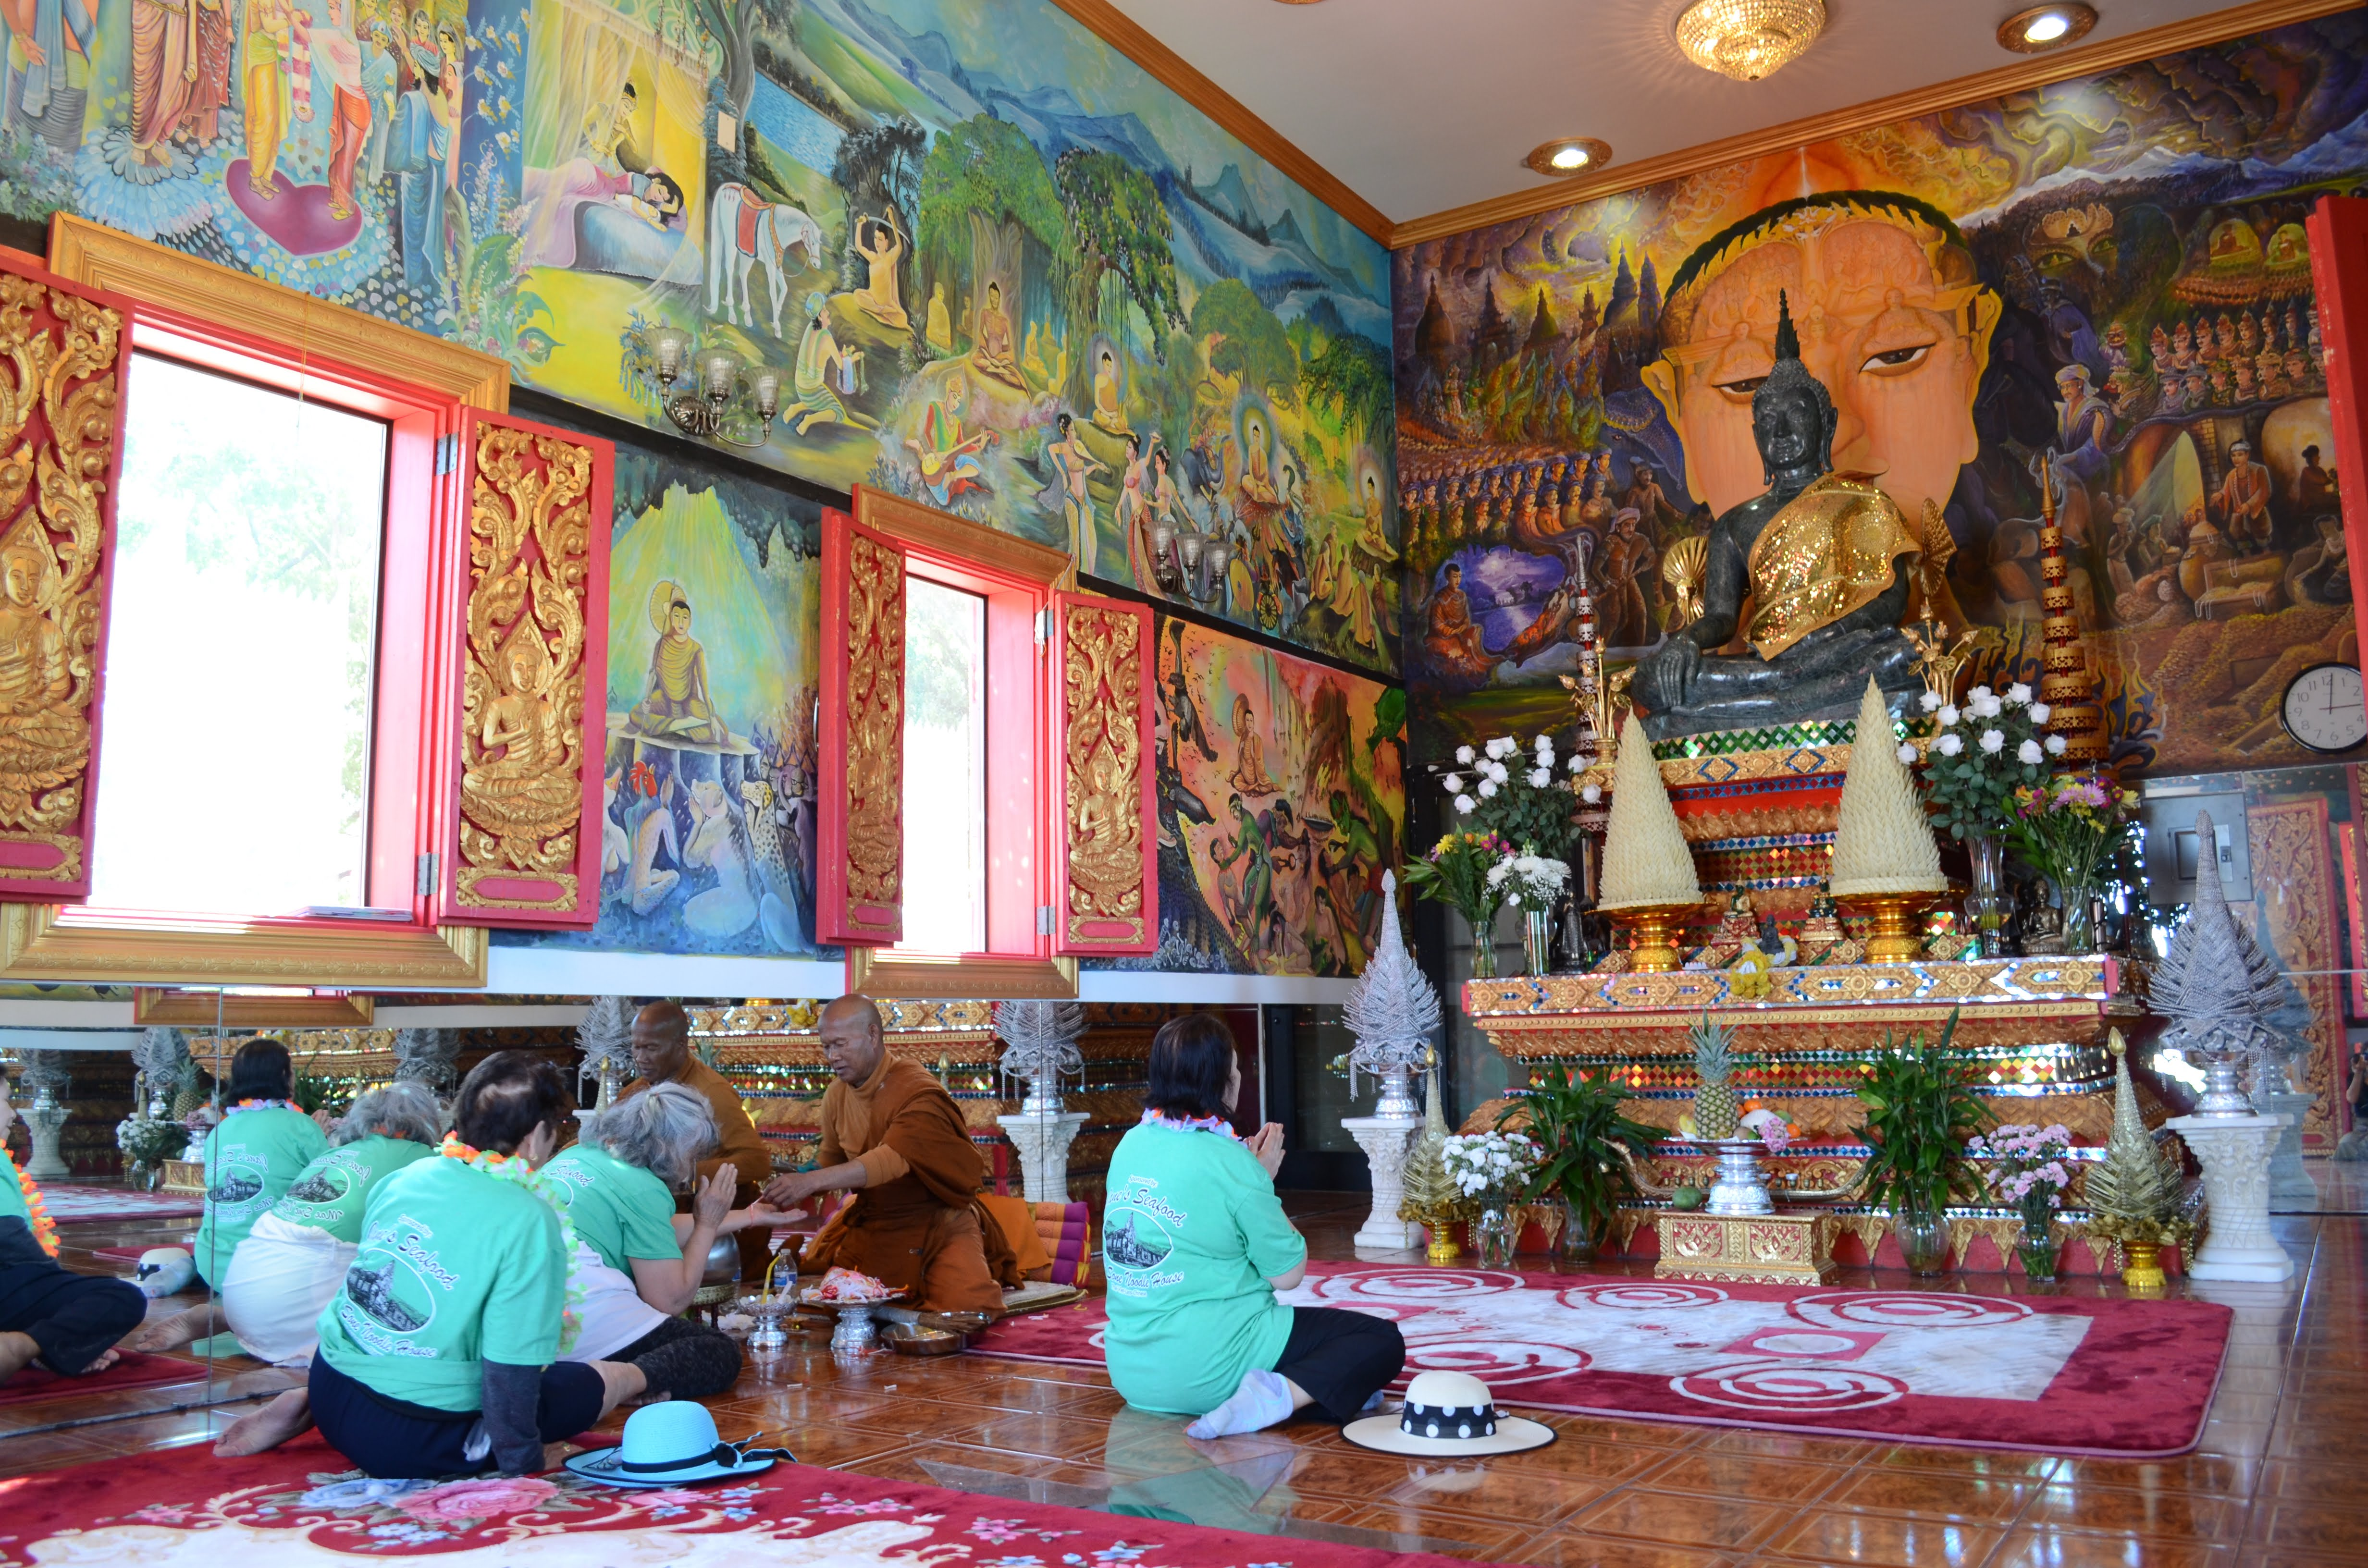 Wat Thammarattanaram is in Lanexang Village near the town of Coteau.